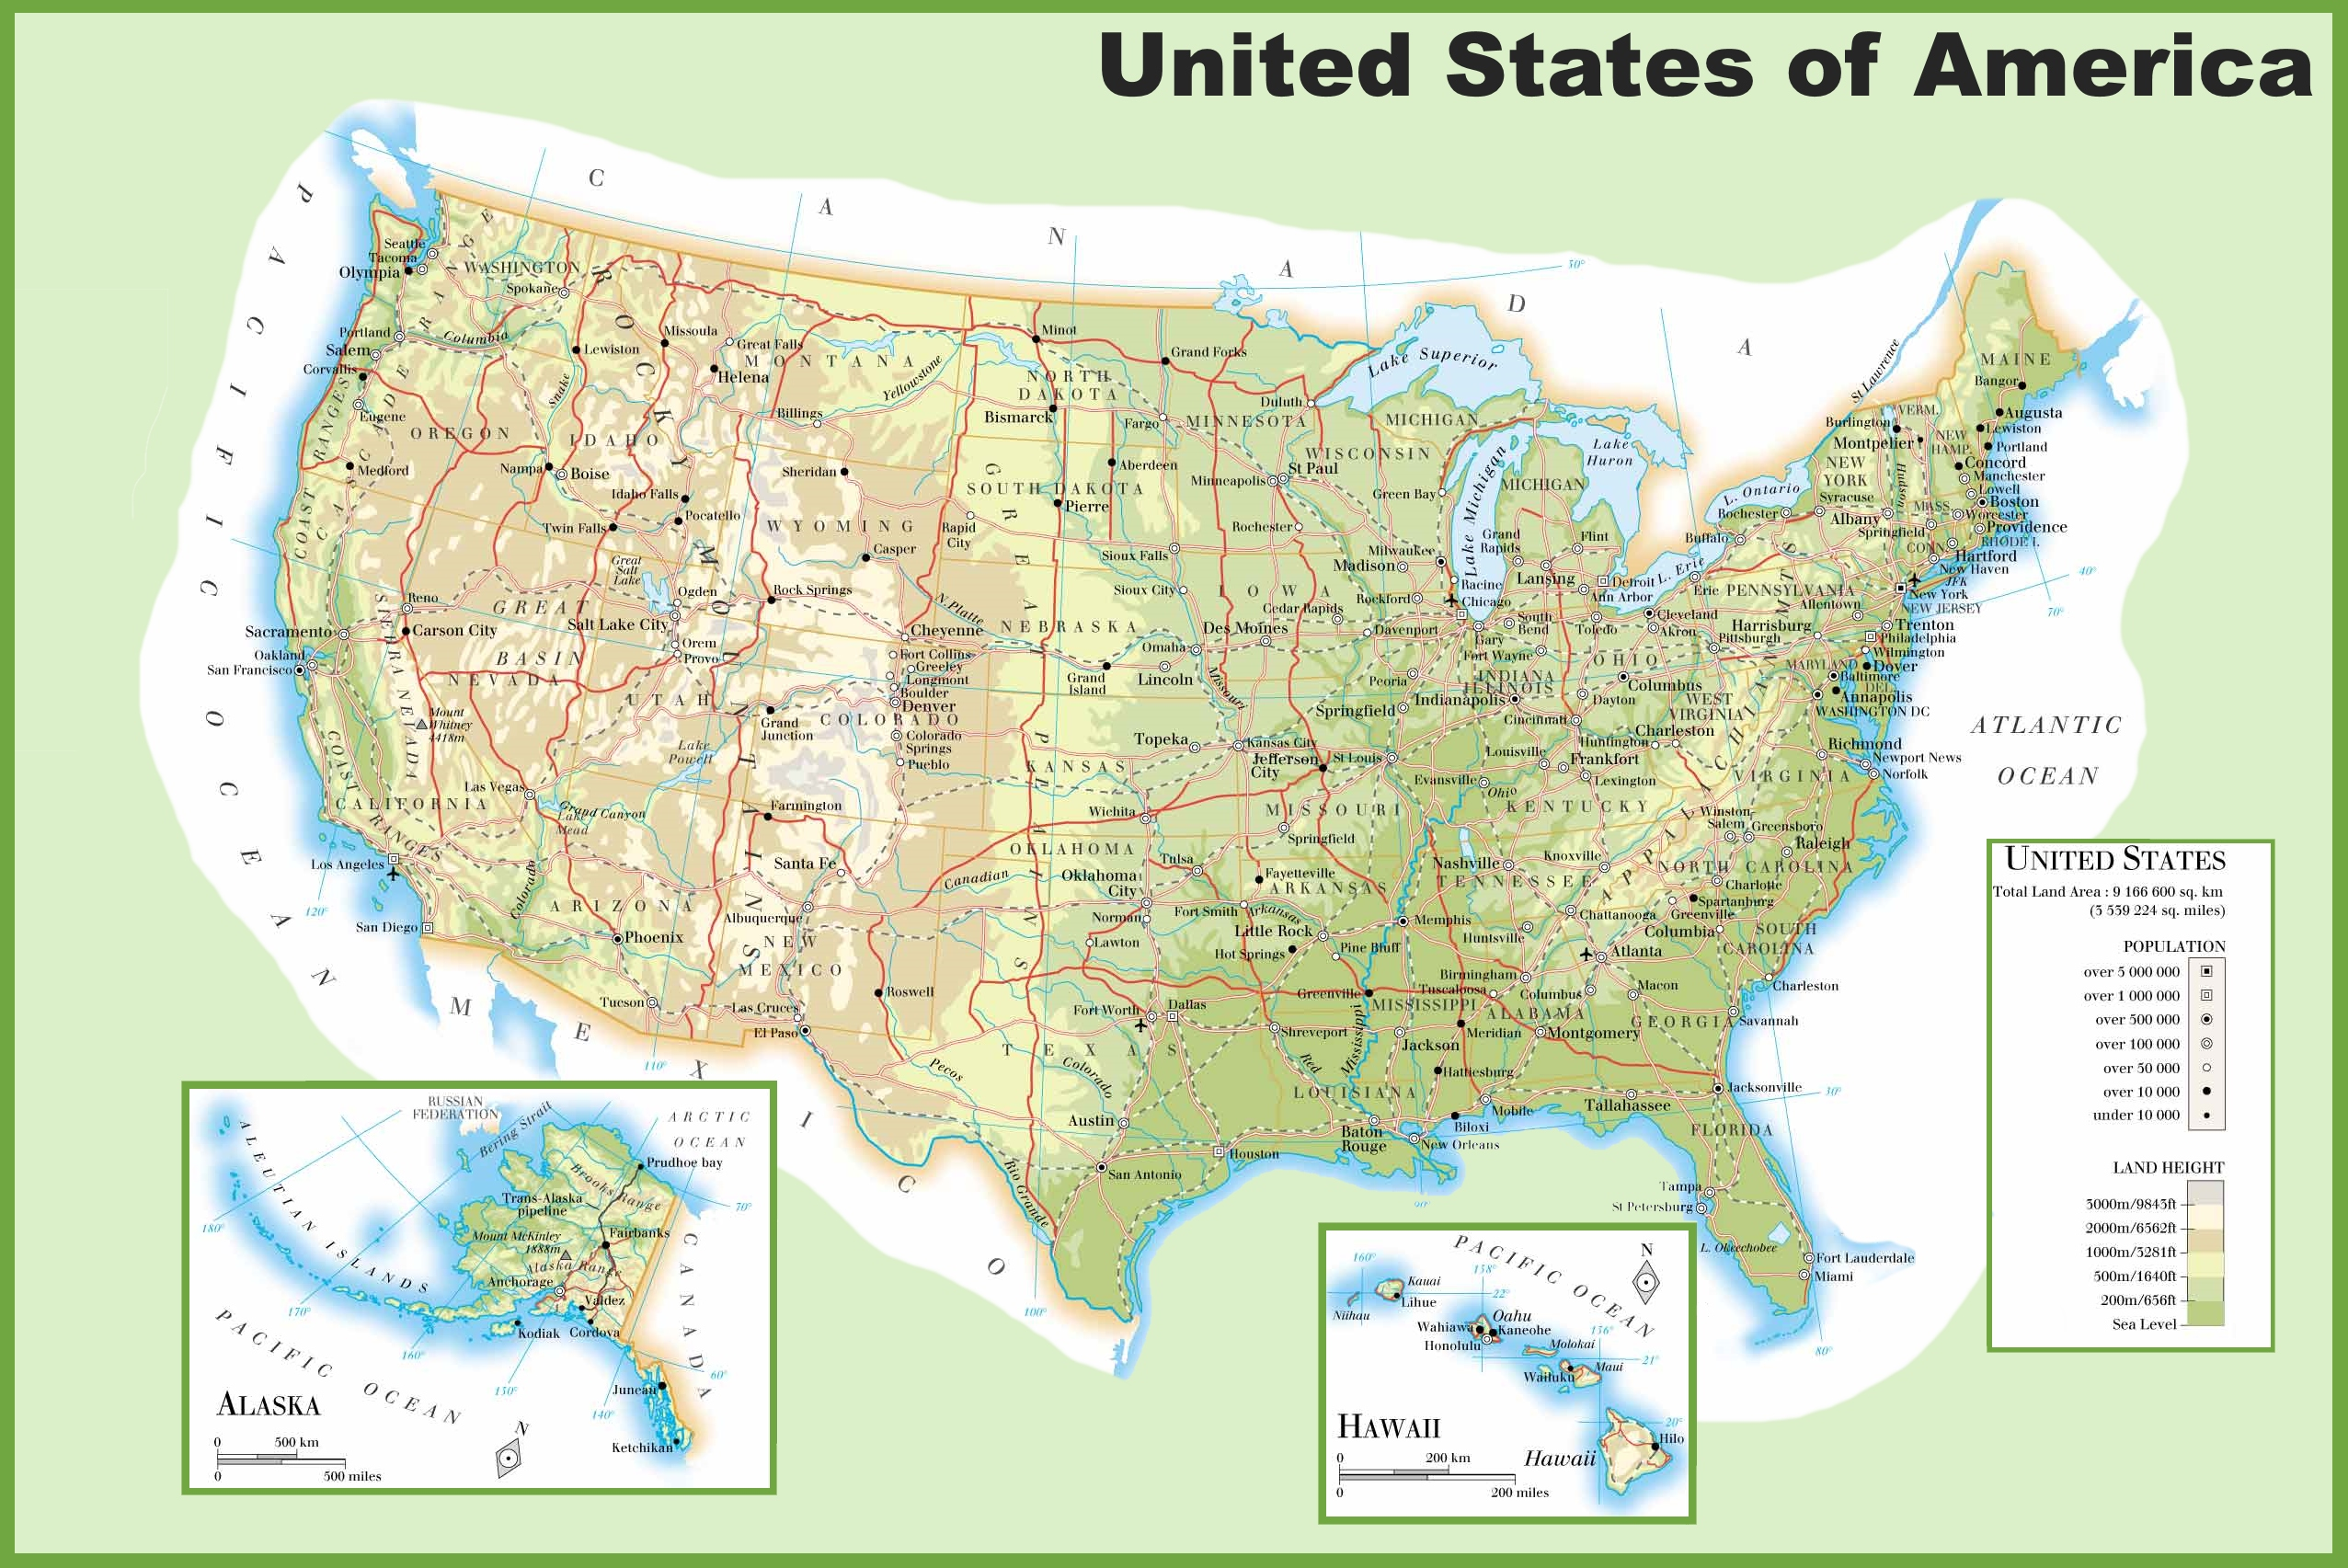 Geography Blog Physical Map Of The United States Of America - United states of america physical map